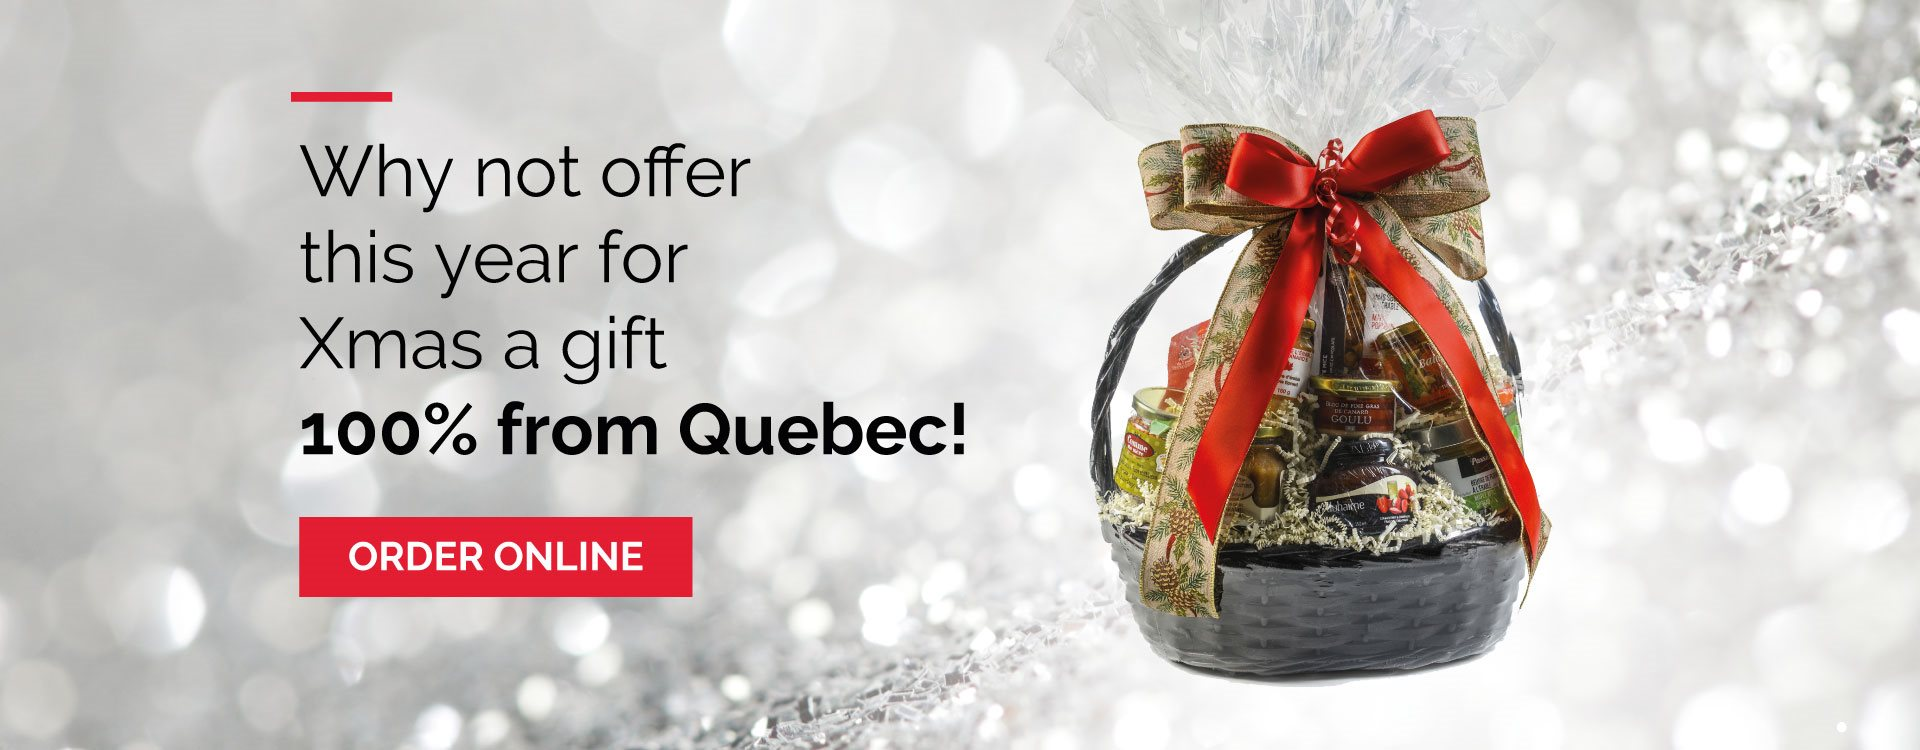 Gift 100% from Quebec!